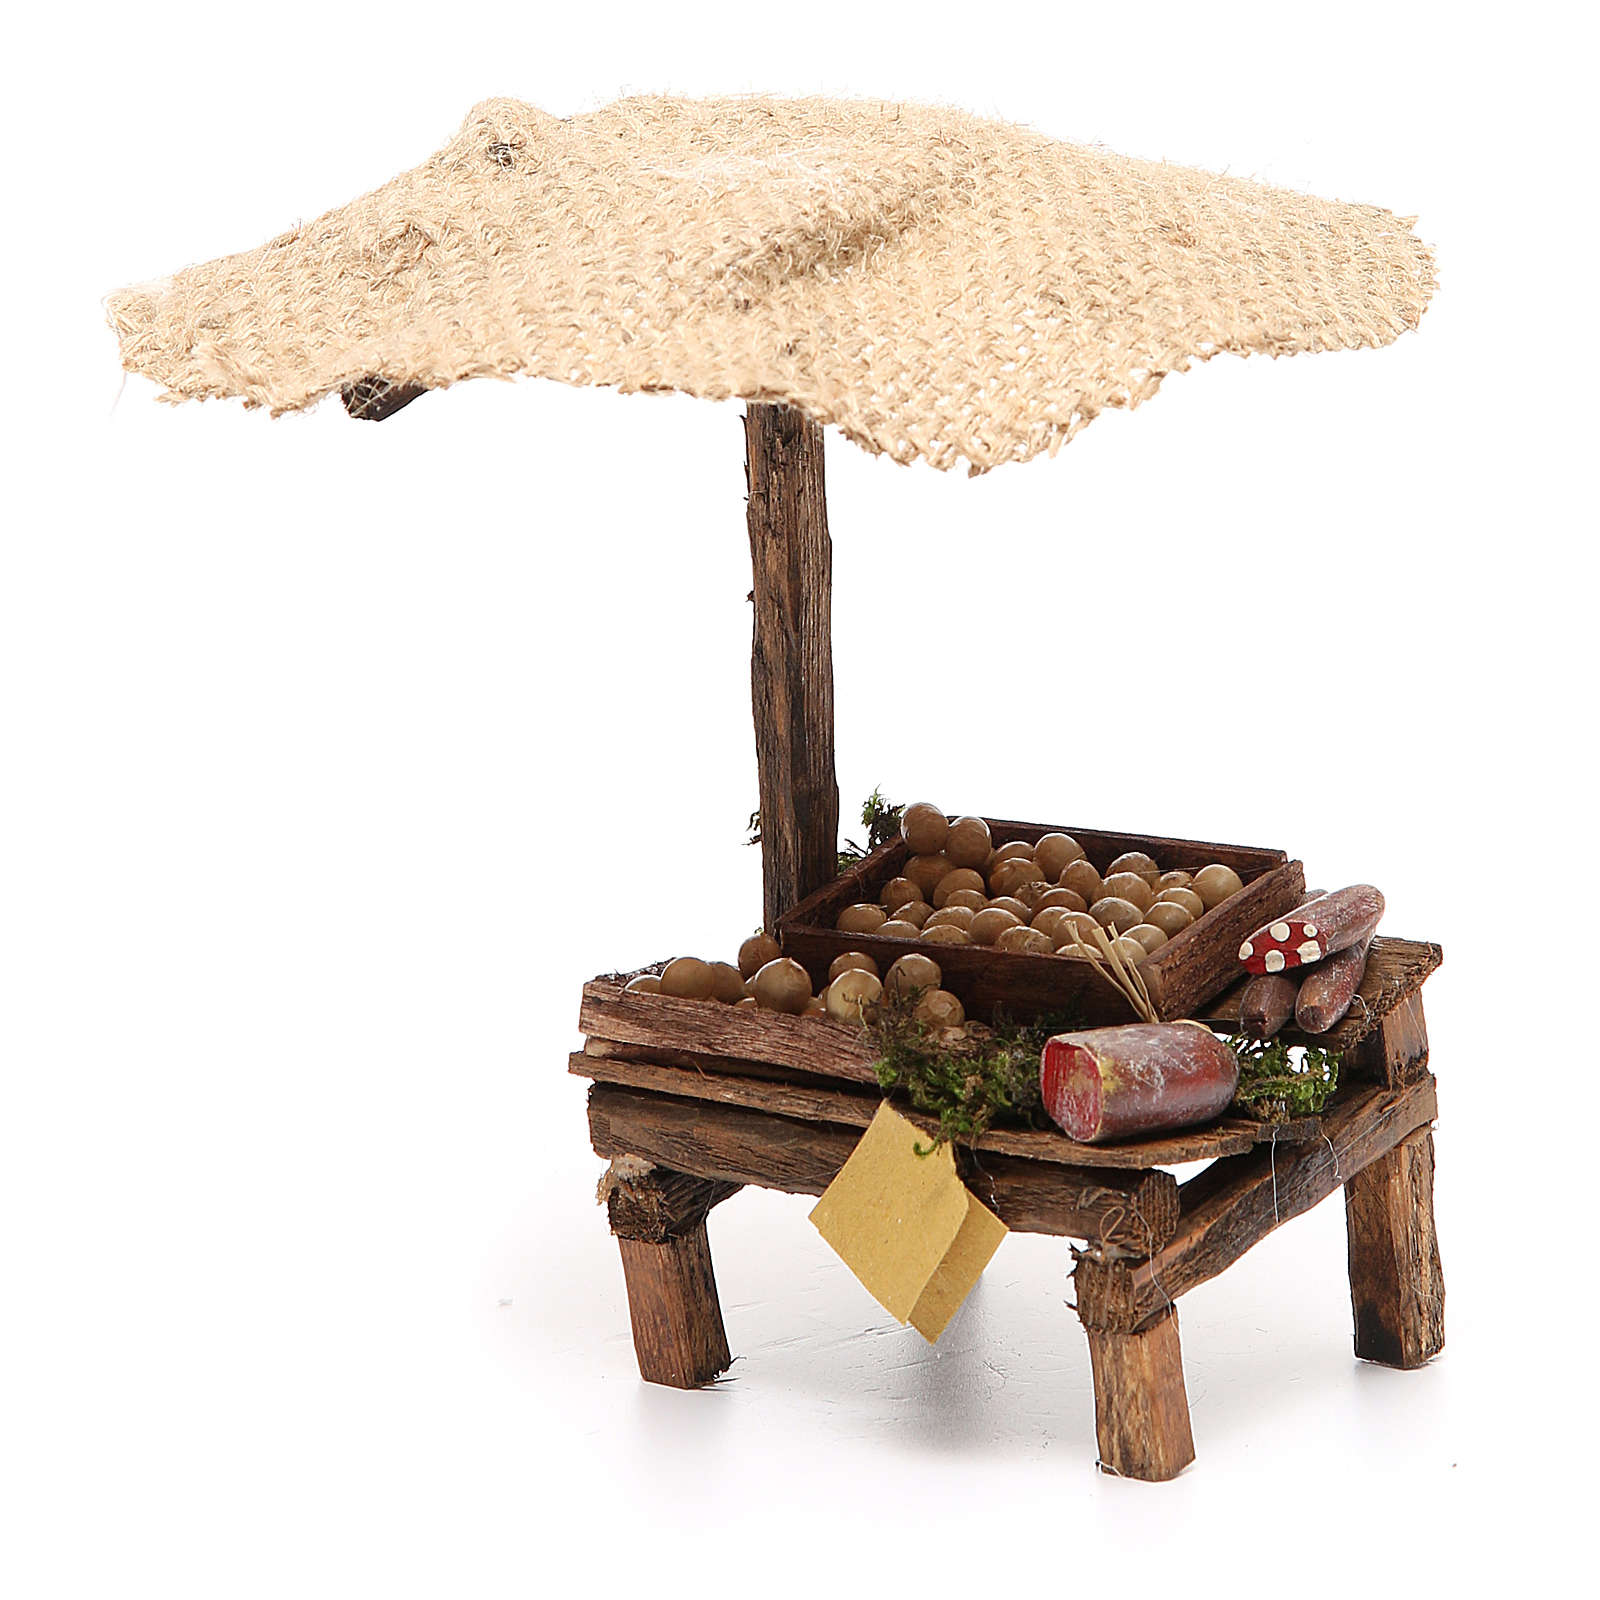 Workshop nativity with beach umbrella, cured meats and eggs 16x10x12cm 4